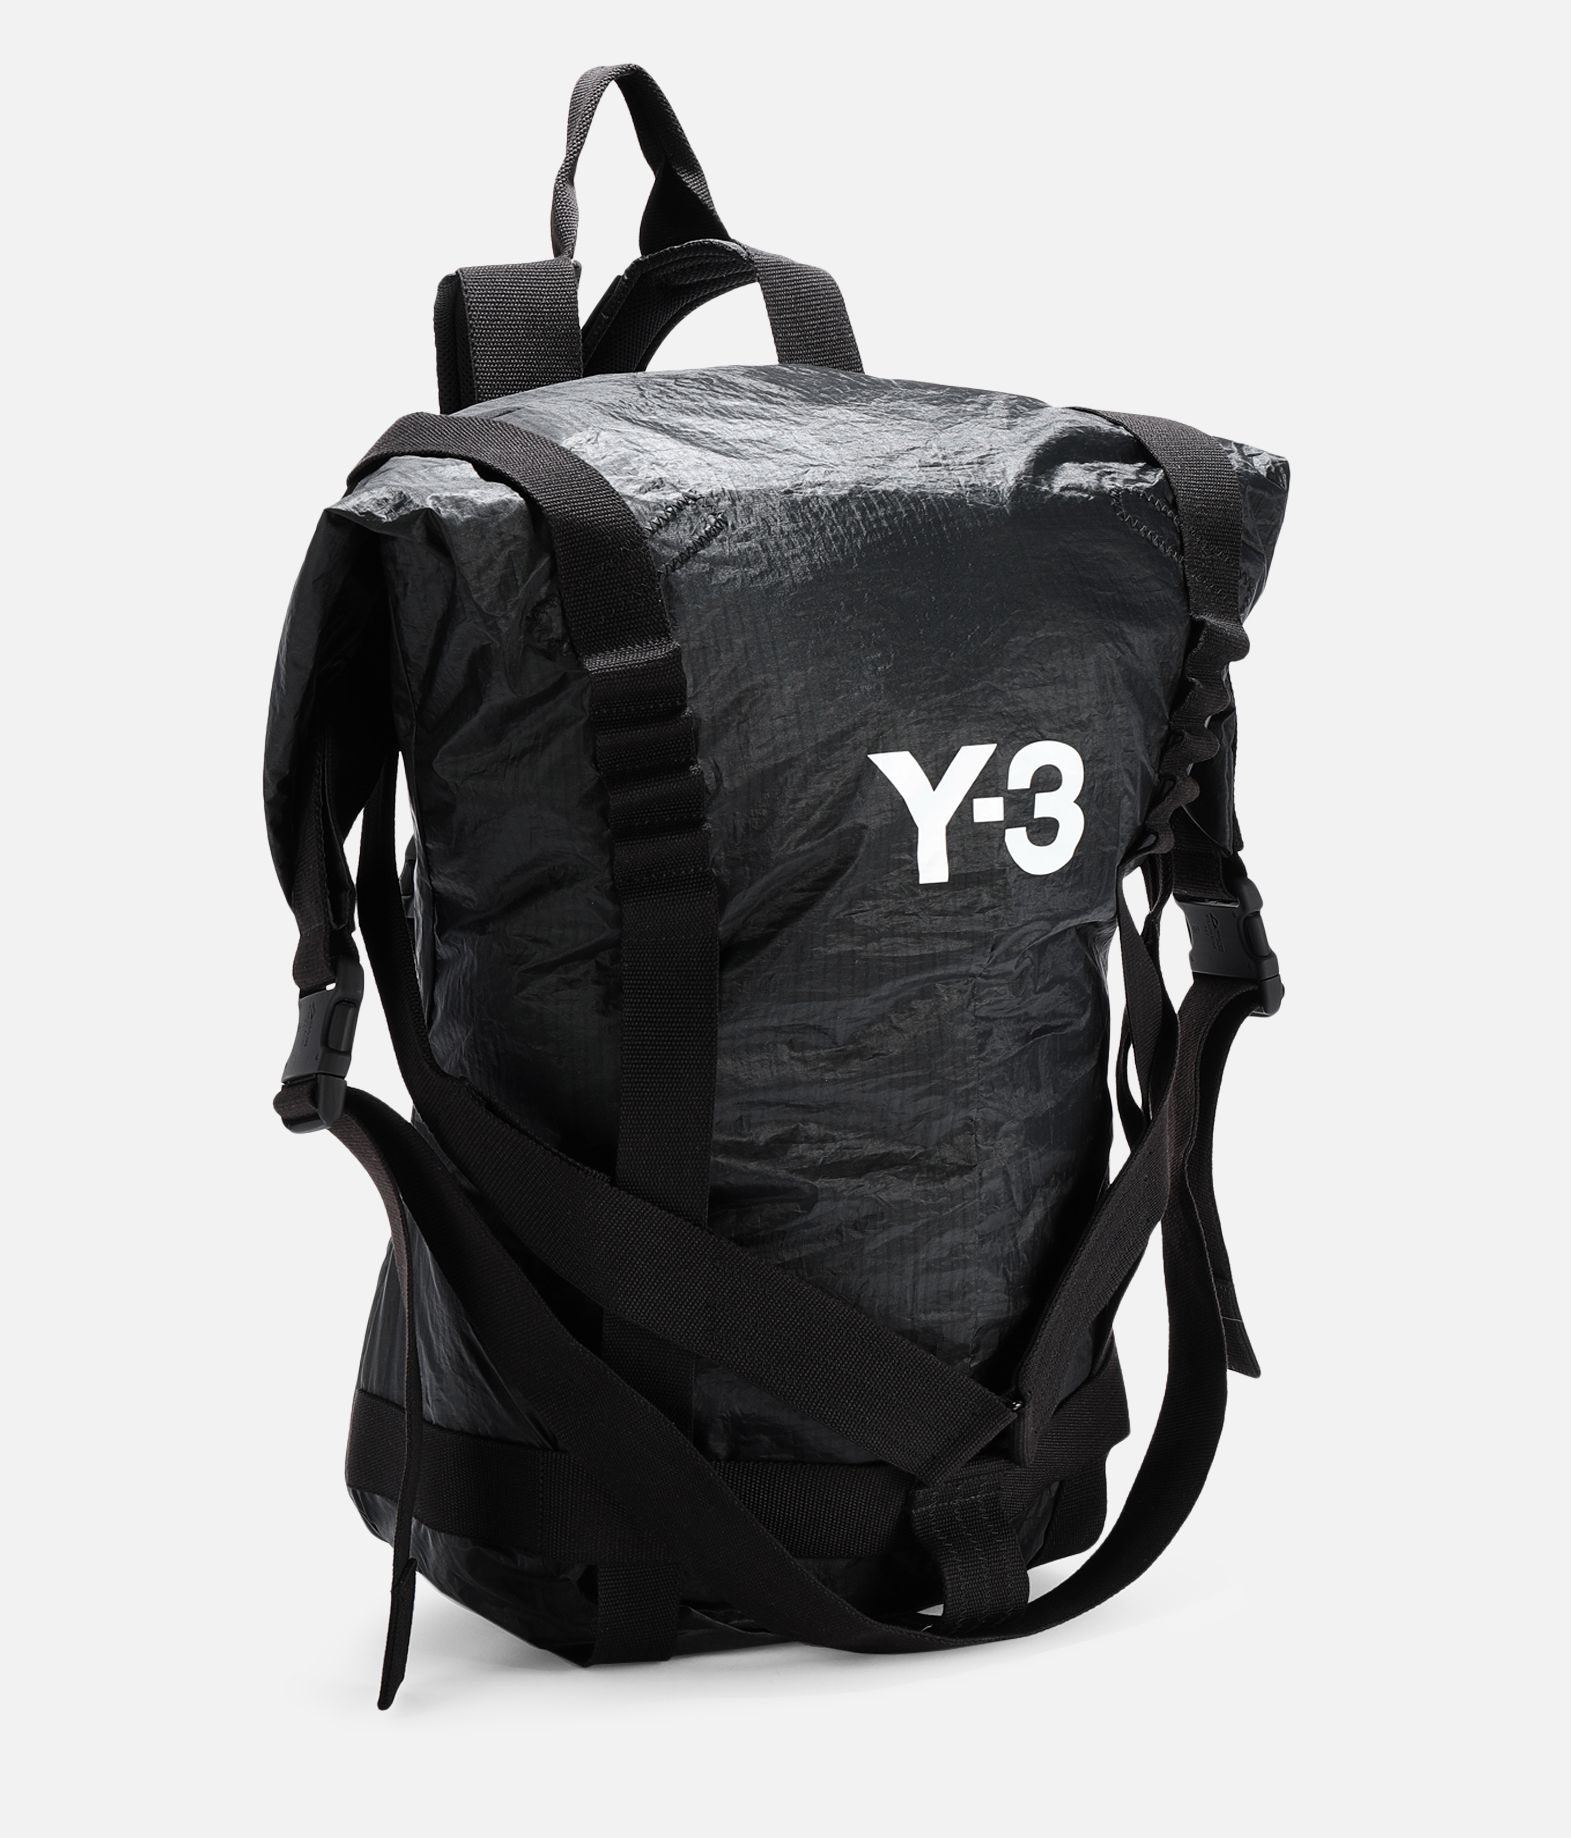 Y-3 Y-3 Itech Backpack Backpack E r